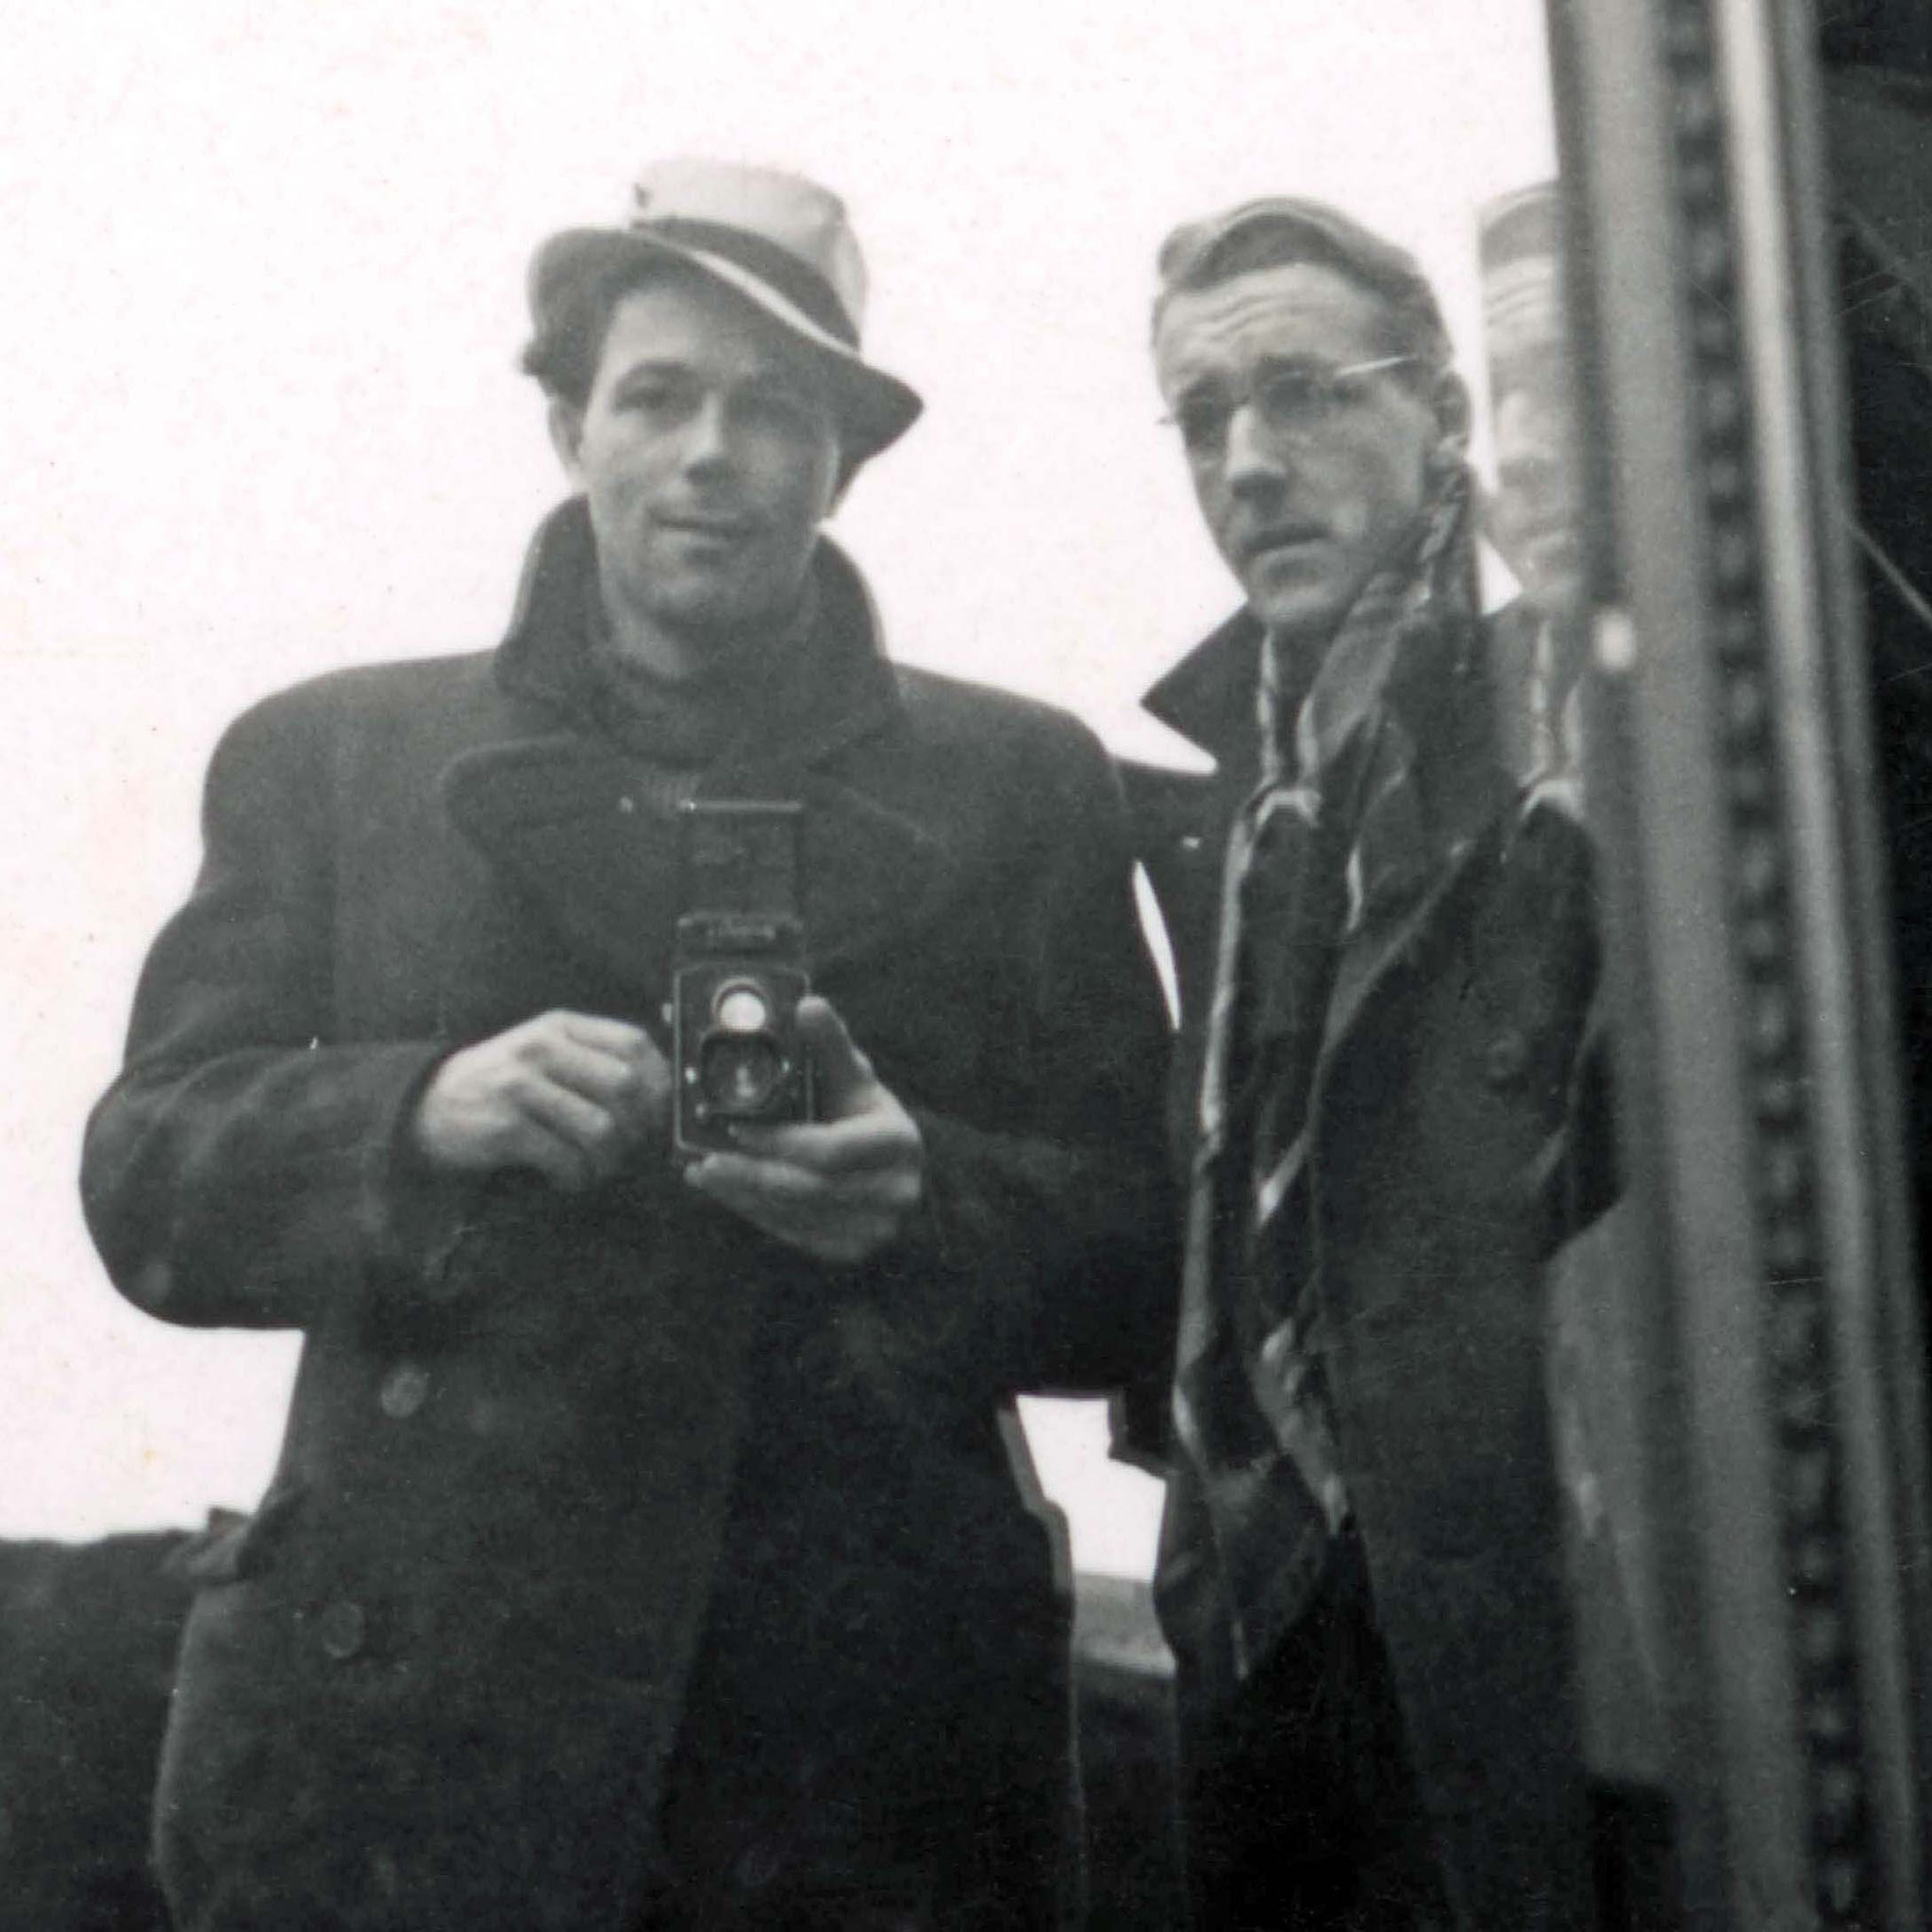 Hans Potthof und Christian Staub in Paris, Winter 1937/38